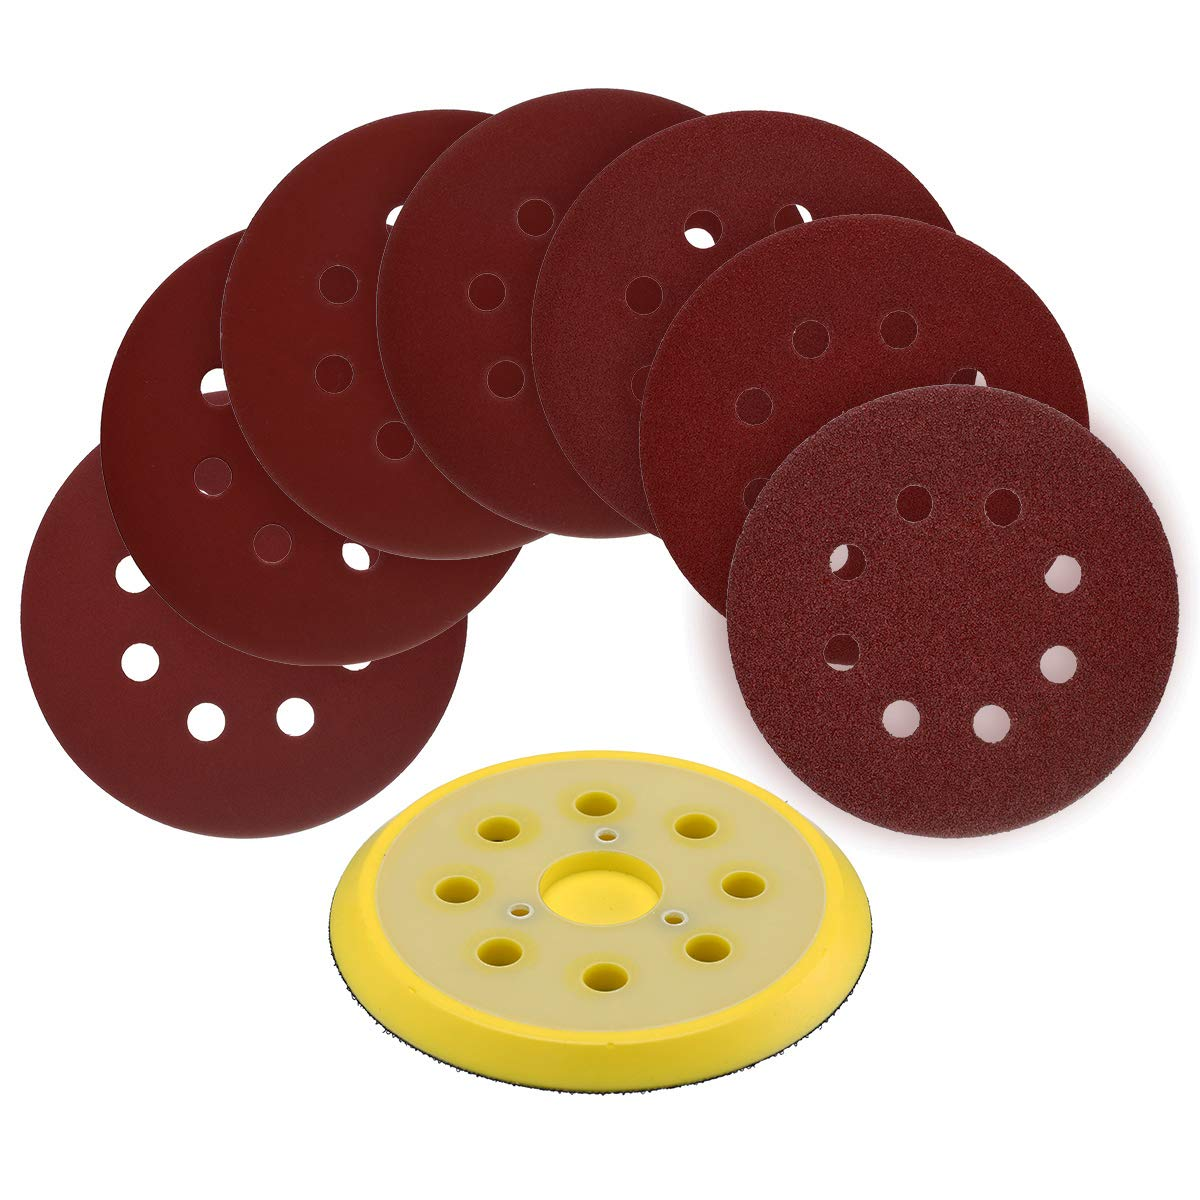 70pcs 5-Inch 8-Hole Hook and Loop Sanding Discs with 5-Inch Random Orbit Sander Pad Replaces DeWalt OE # 151281-08 (Compatible with DeWalt, Black & Decker and Porter Cable Tools)